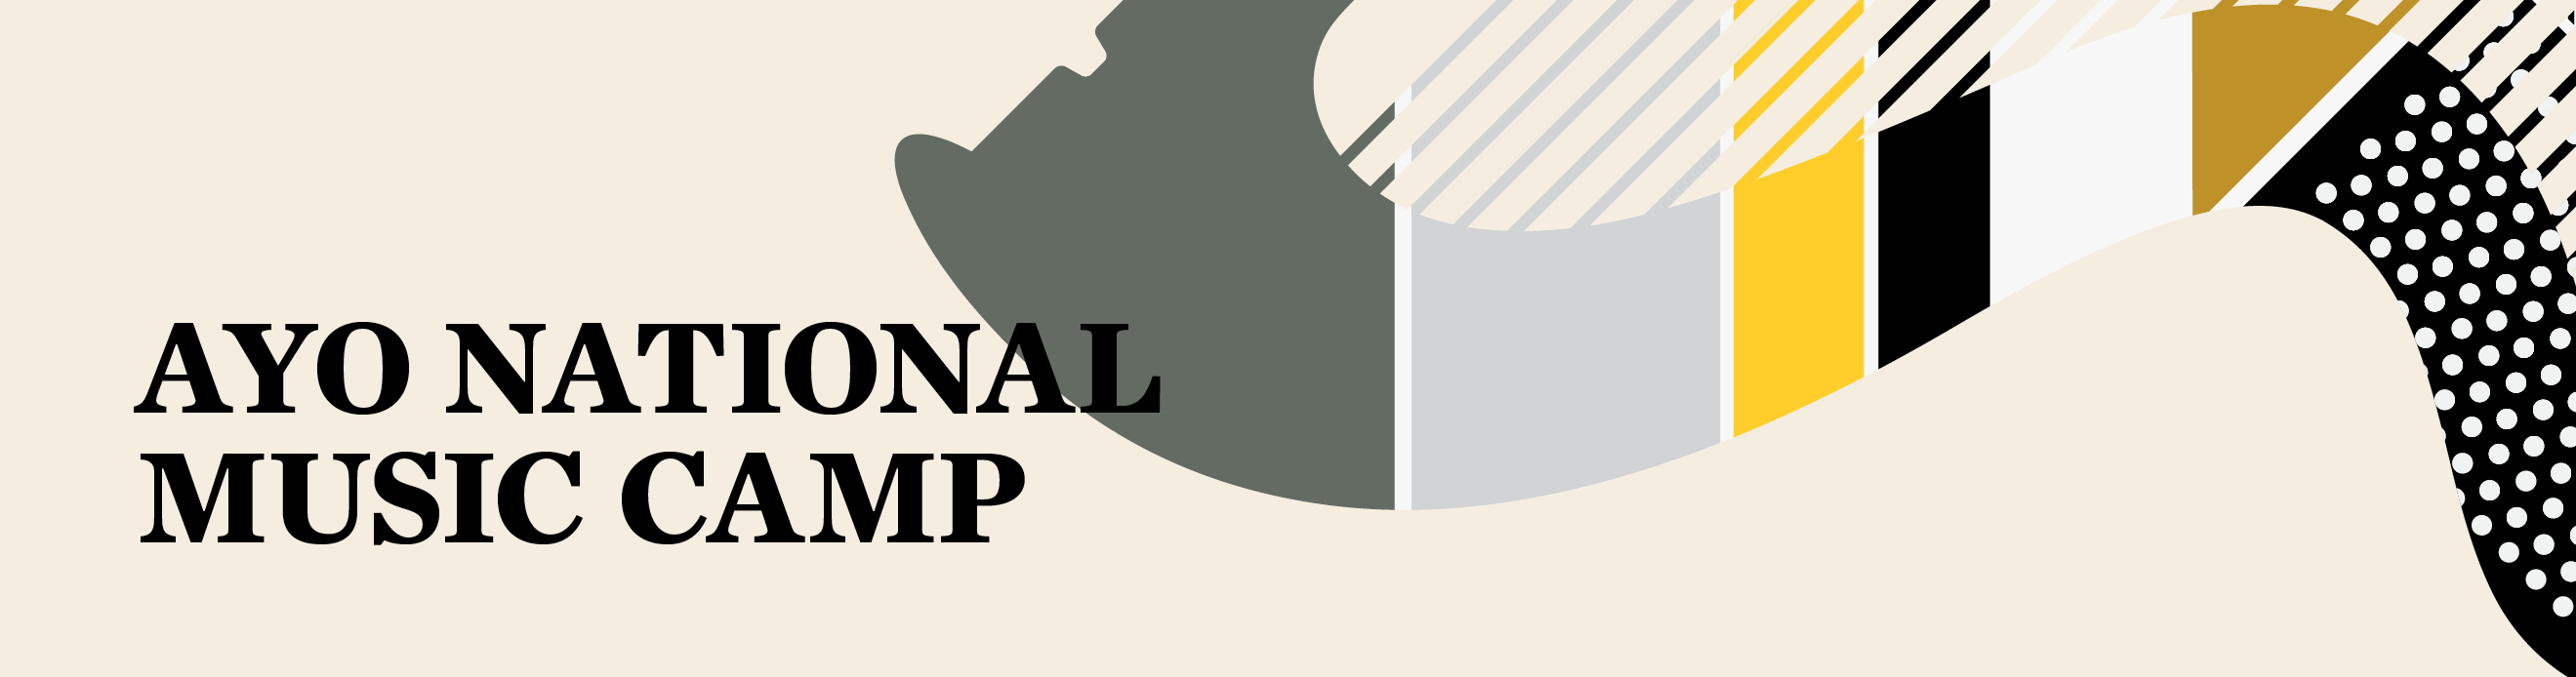 AYO National Music Camp banner